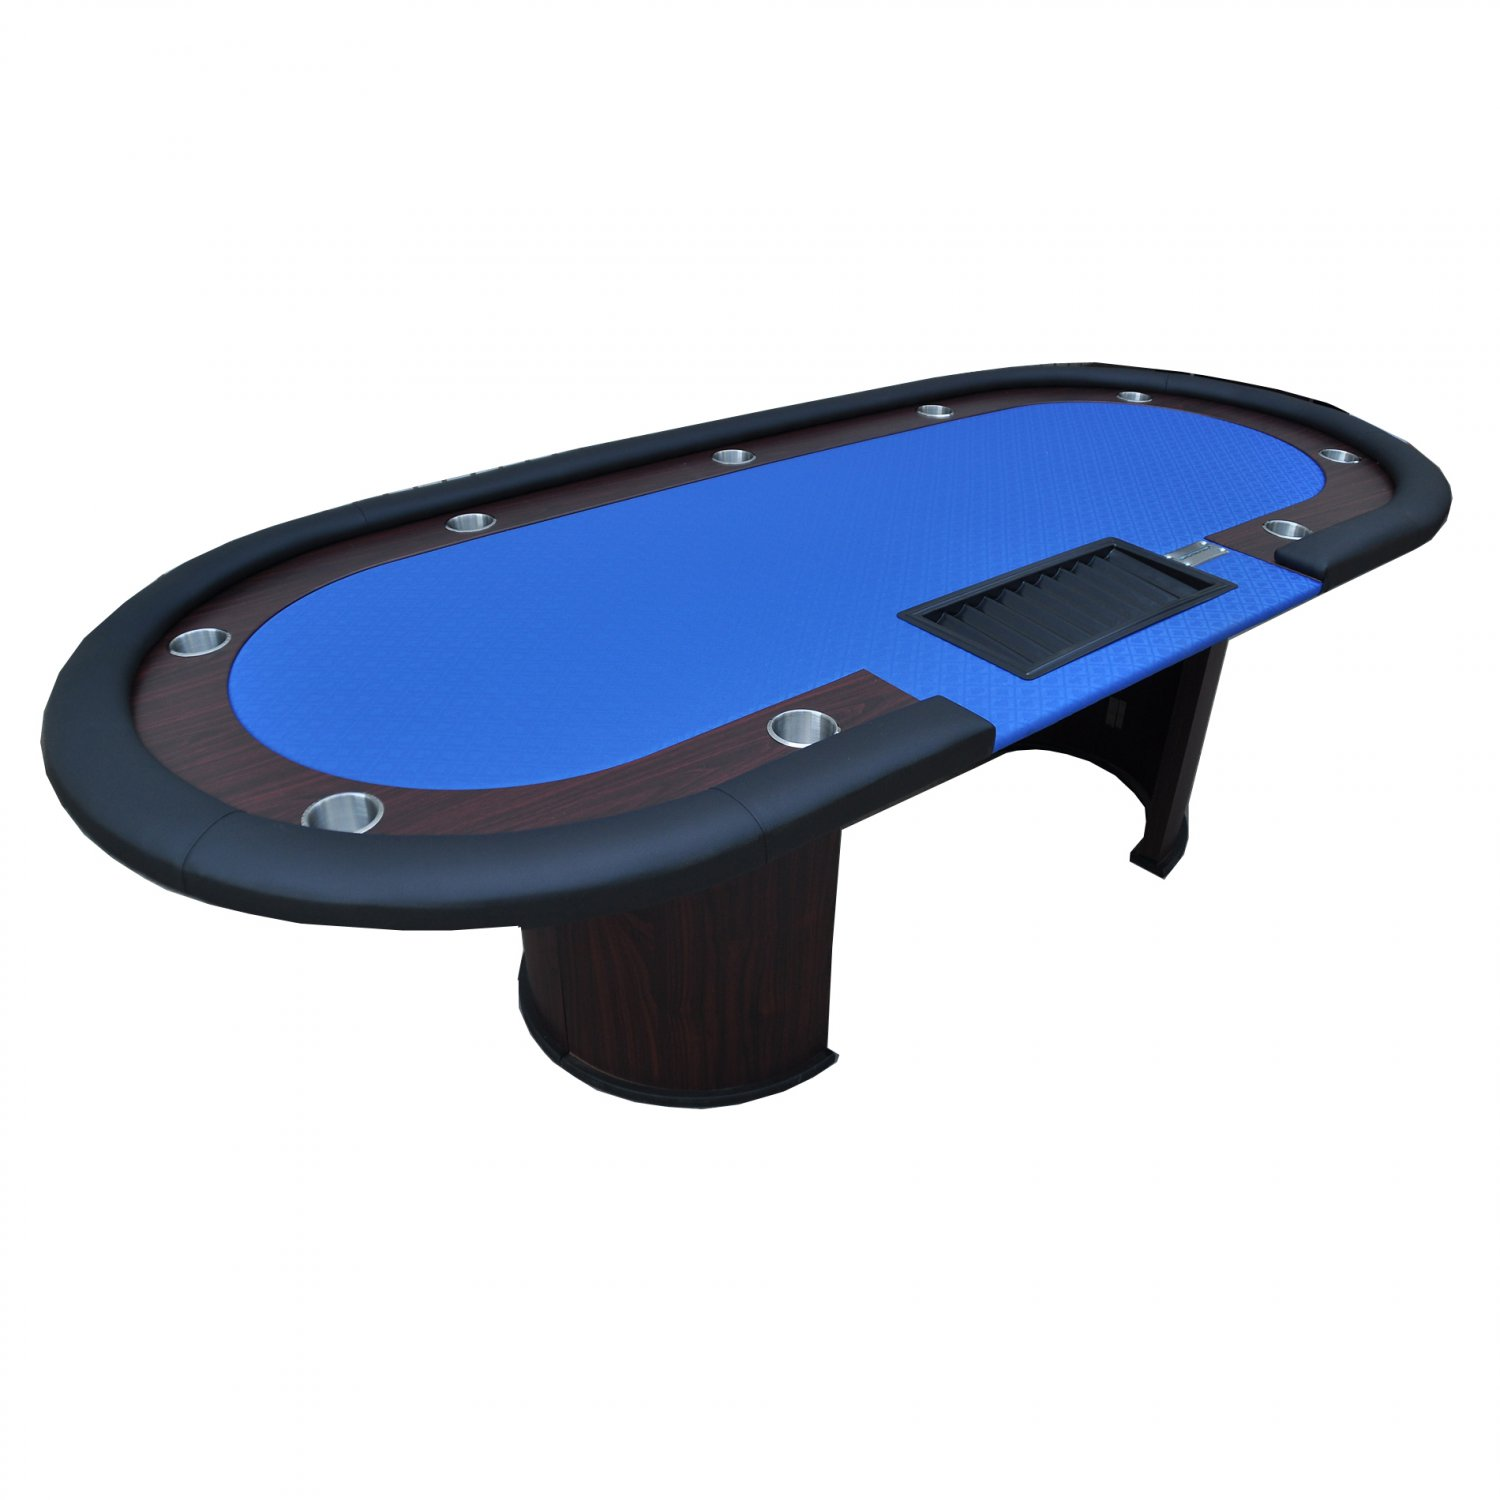 """96"""" 10 Players Texas Hold'em Wooden Legs Poker Table W/ Drop Box Blue Ver.2(Ship US Only)#16367-BL#"""